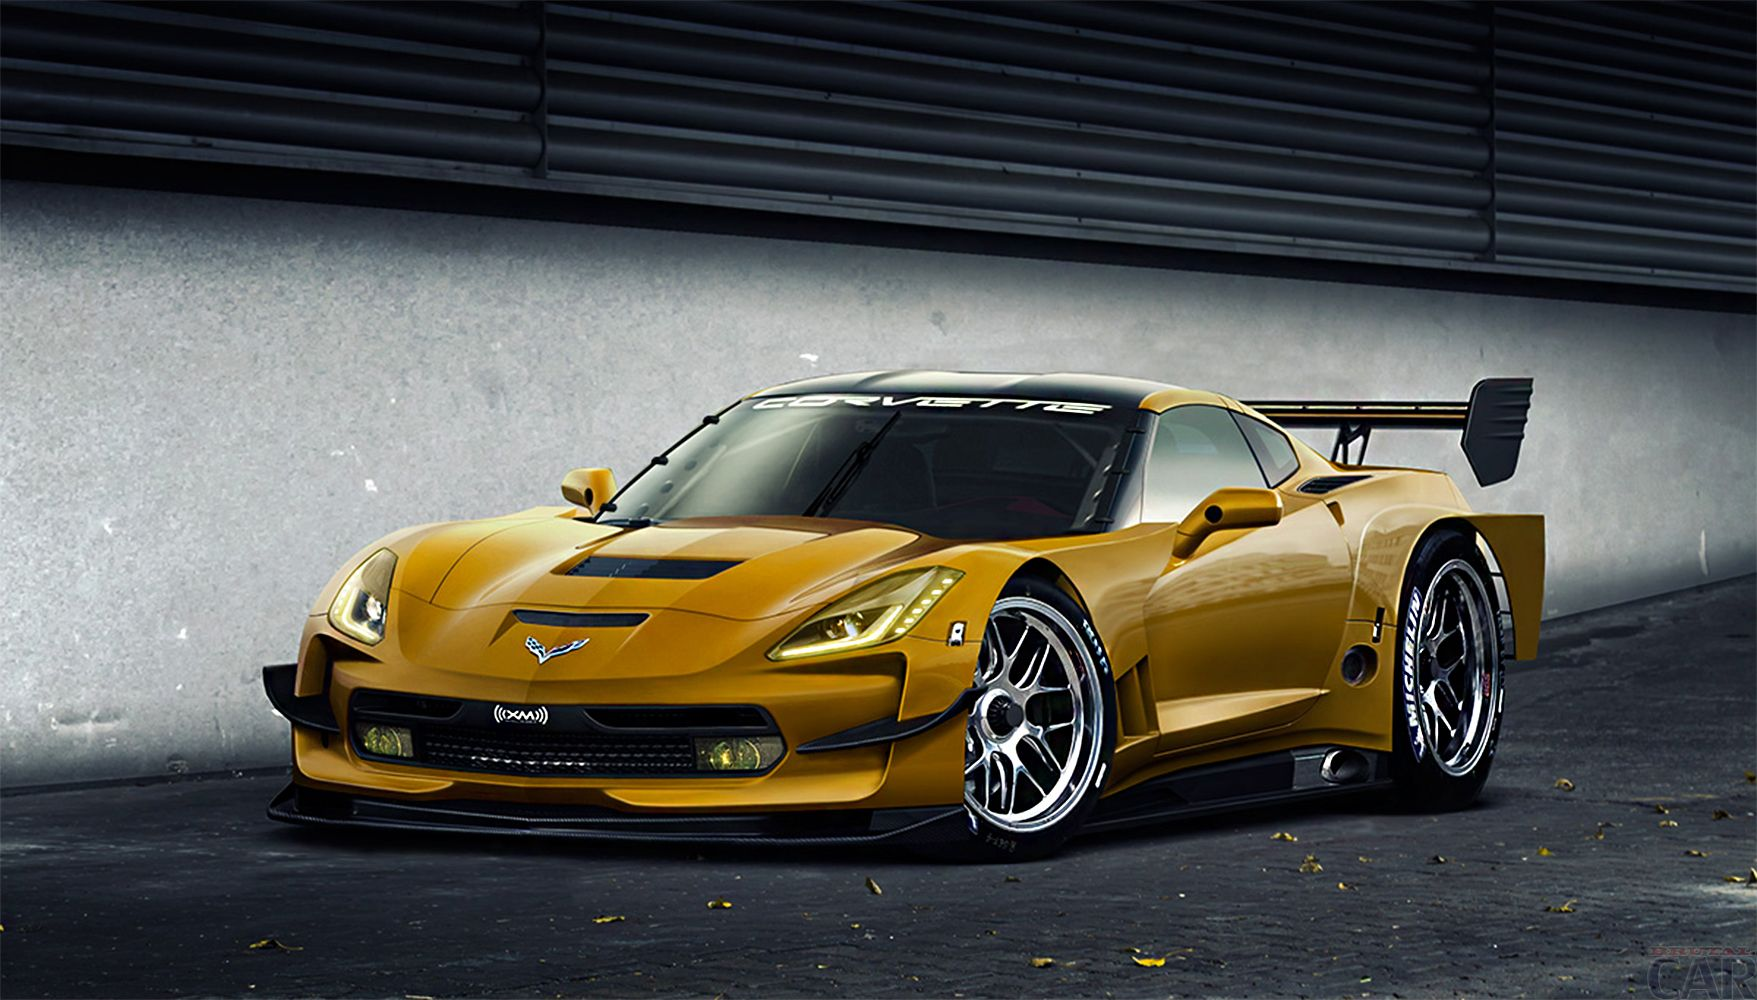 2019 Chevrolet Corvette C6 photo - 5